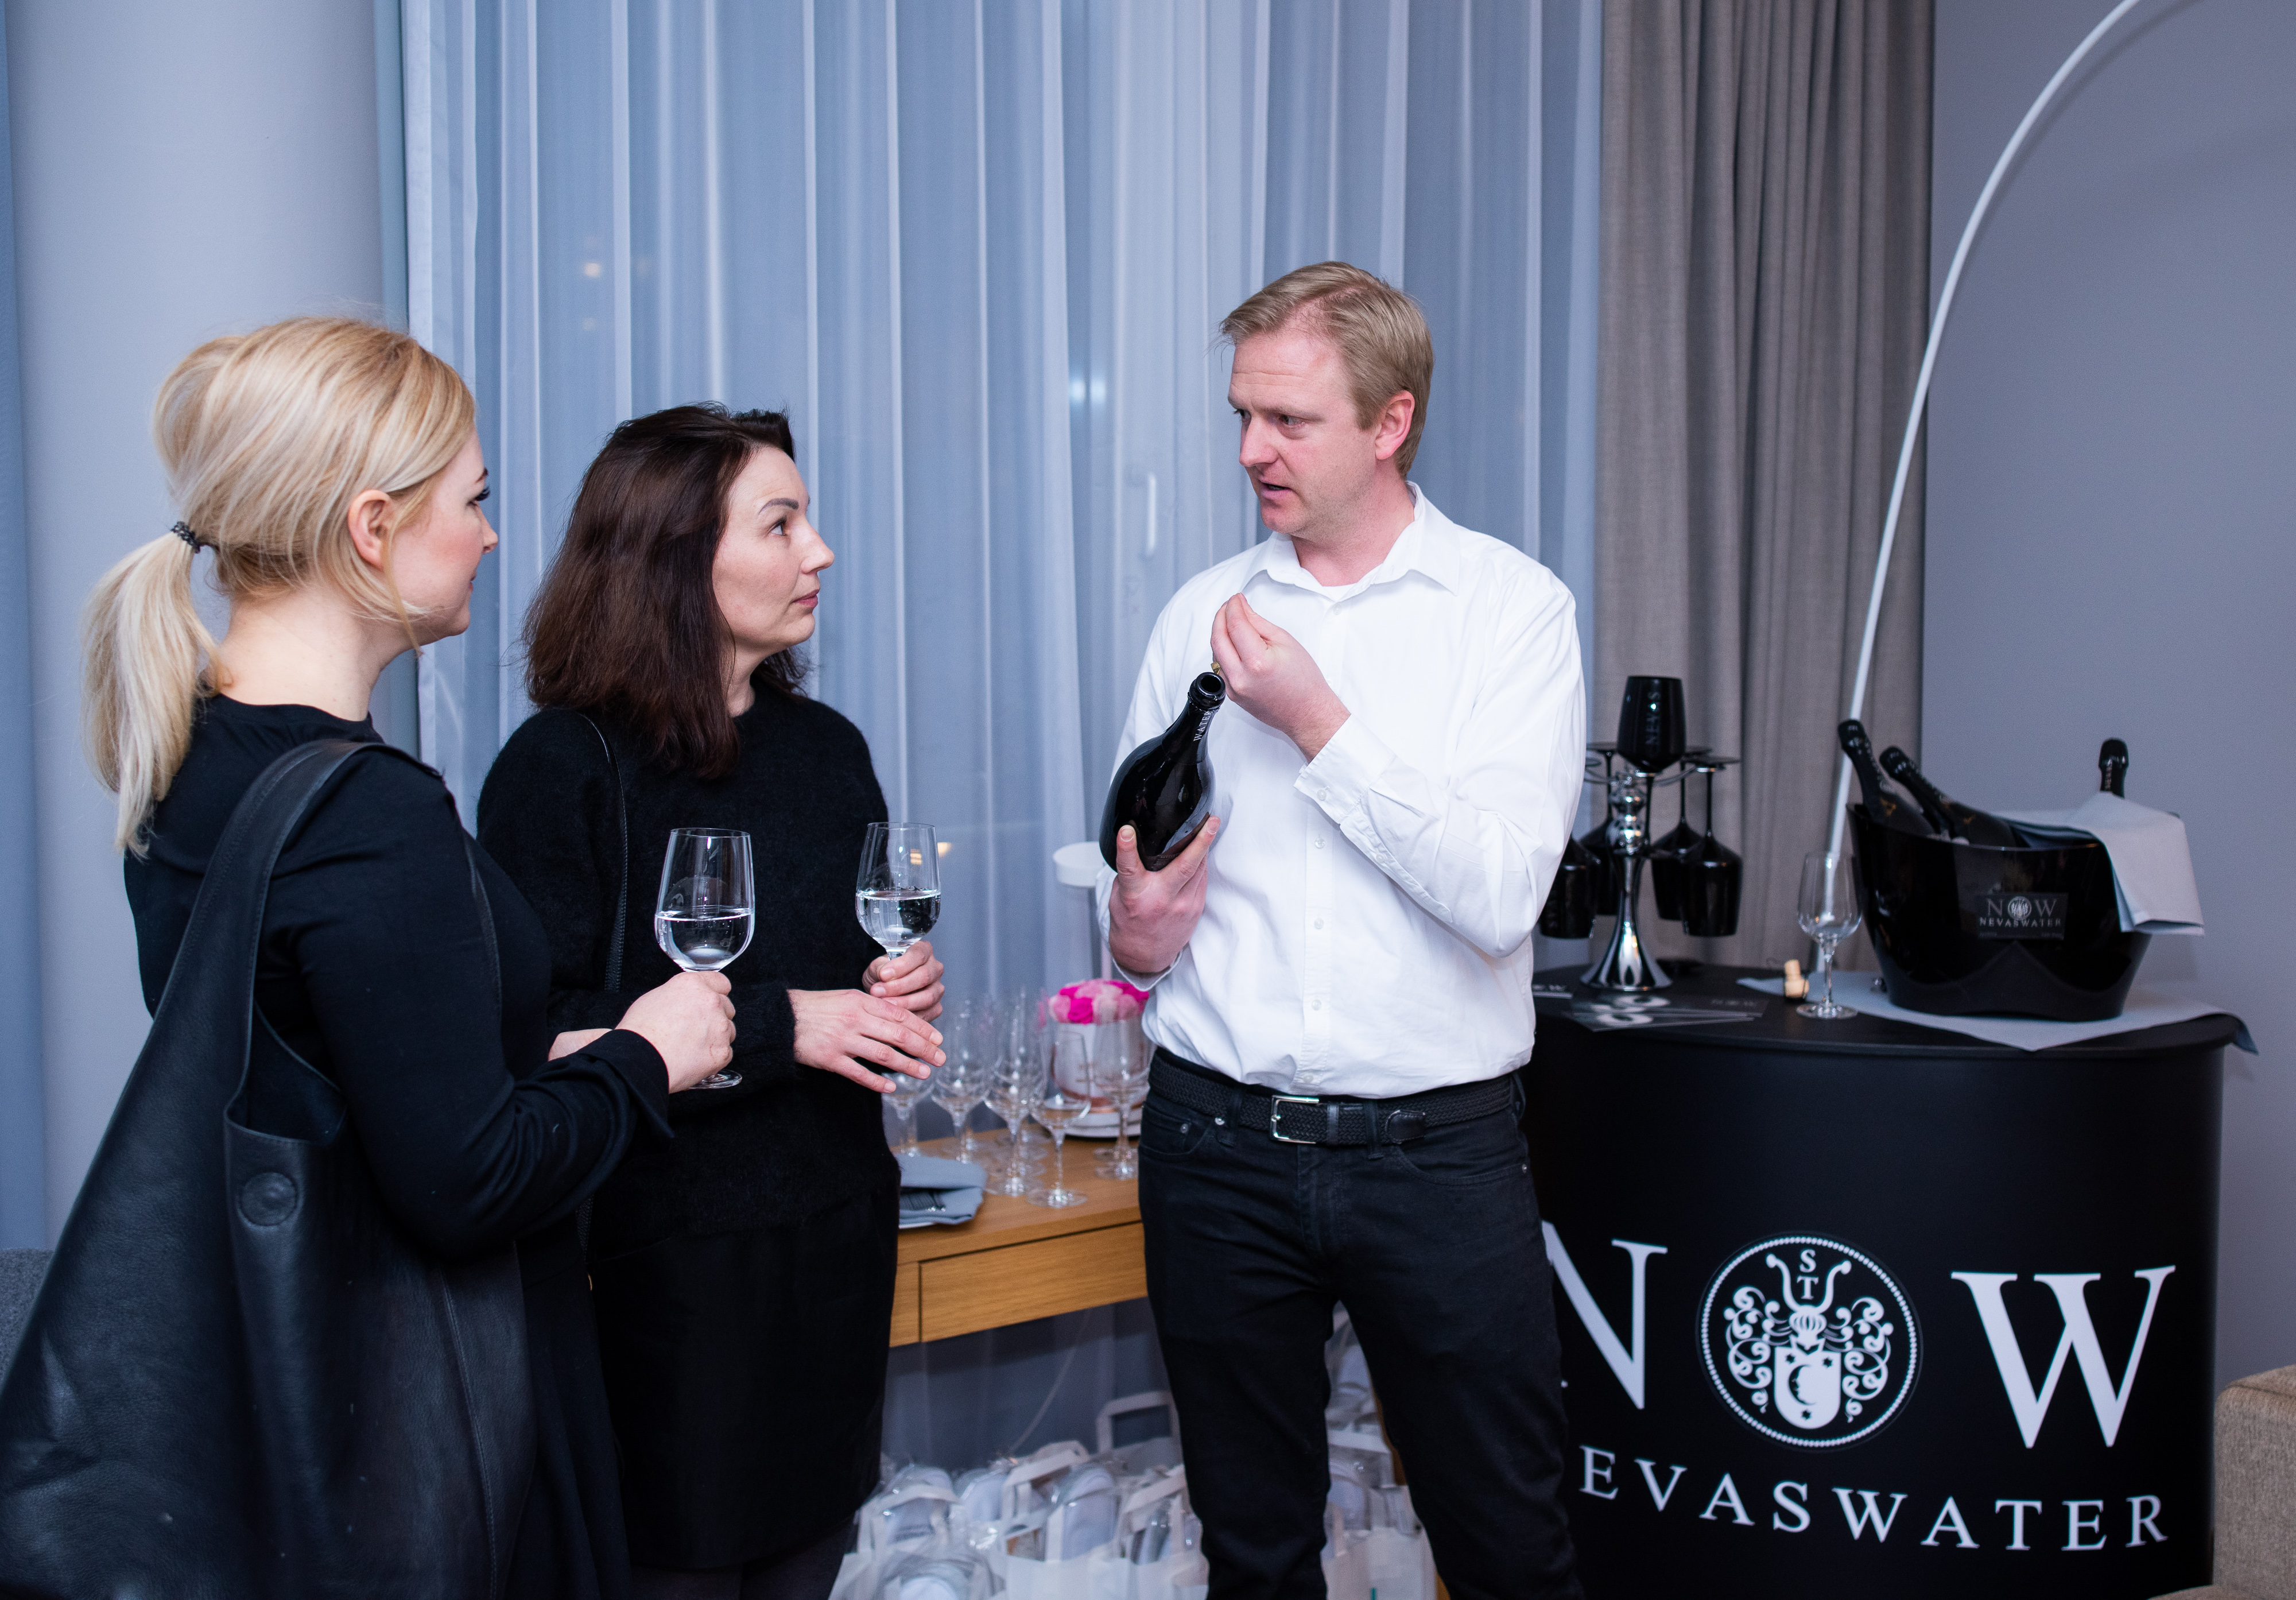 Frühlingshafte Beauty Highlights auf der Fashiondeluxxe Beauty Night - Edition Spring Mood im Steigenberger Hotel München, NEVAS Water als Event Sponsor